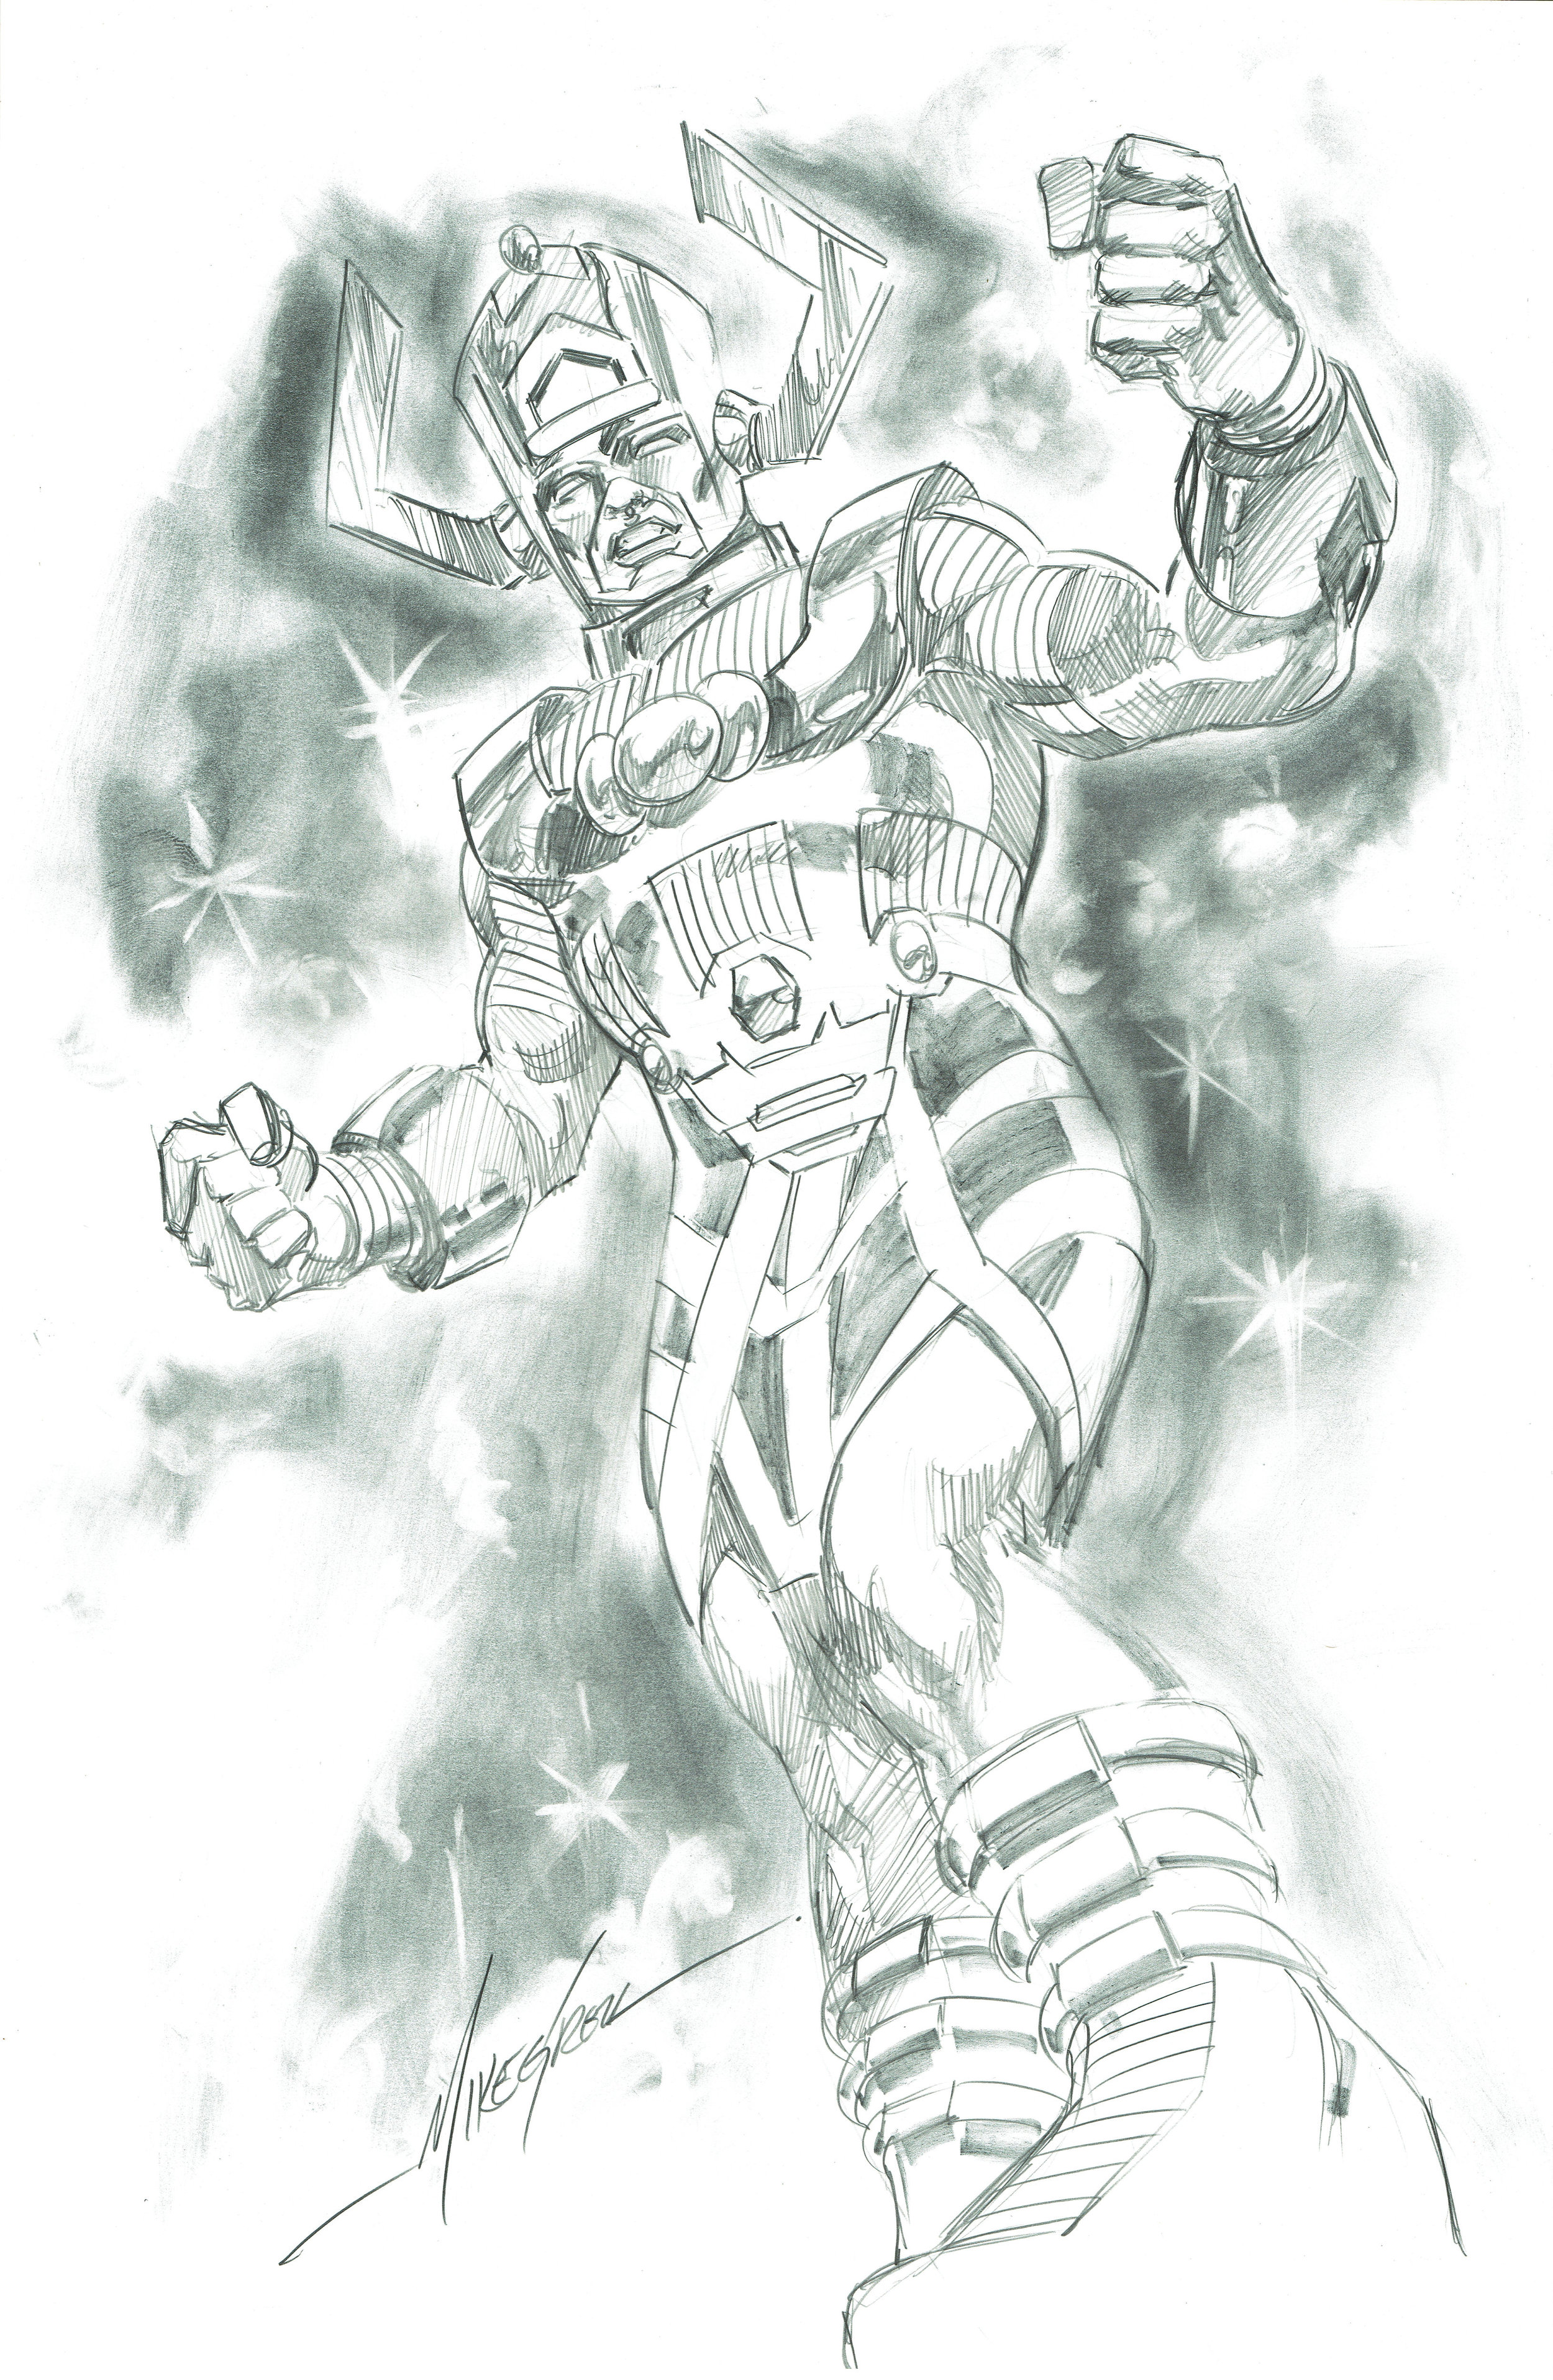 A pencil commission of Galactus done by Mike Grell in 2015.